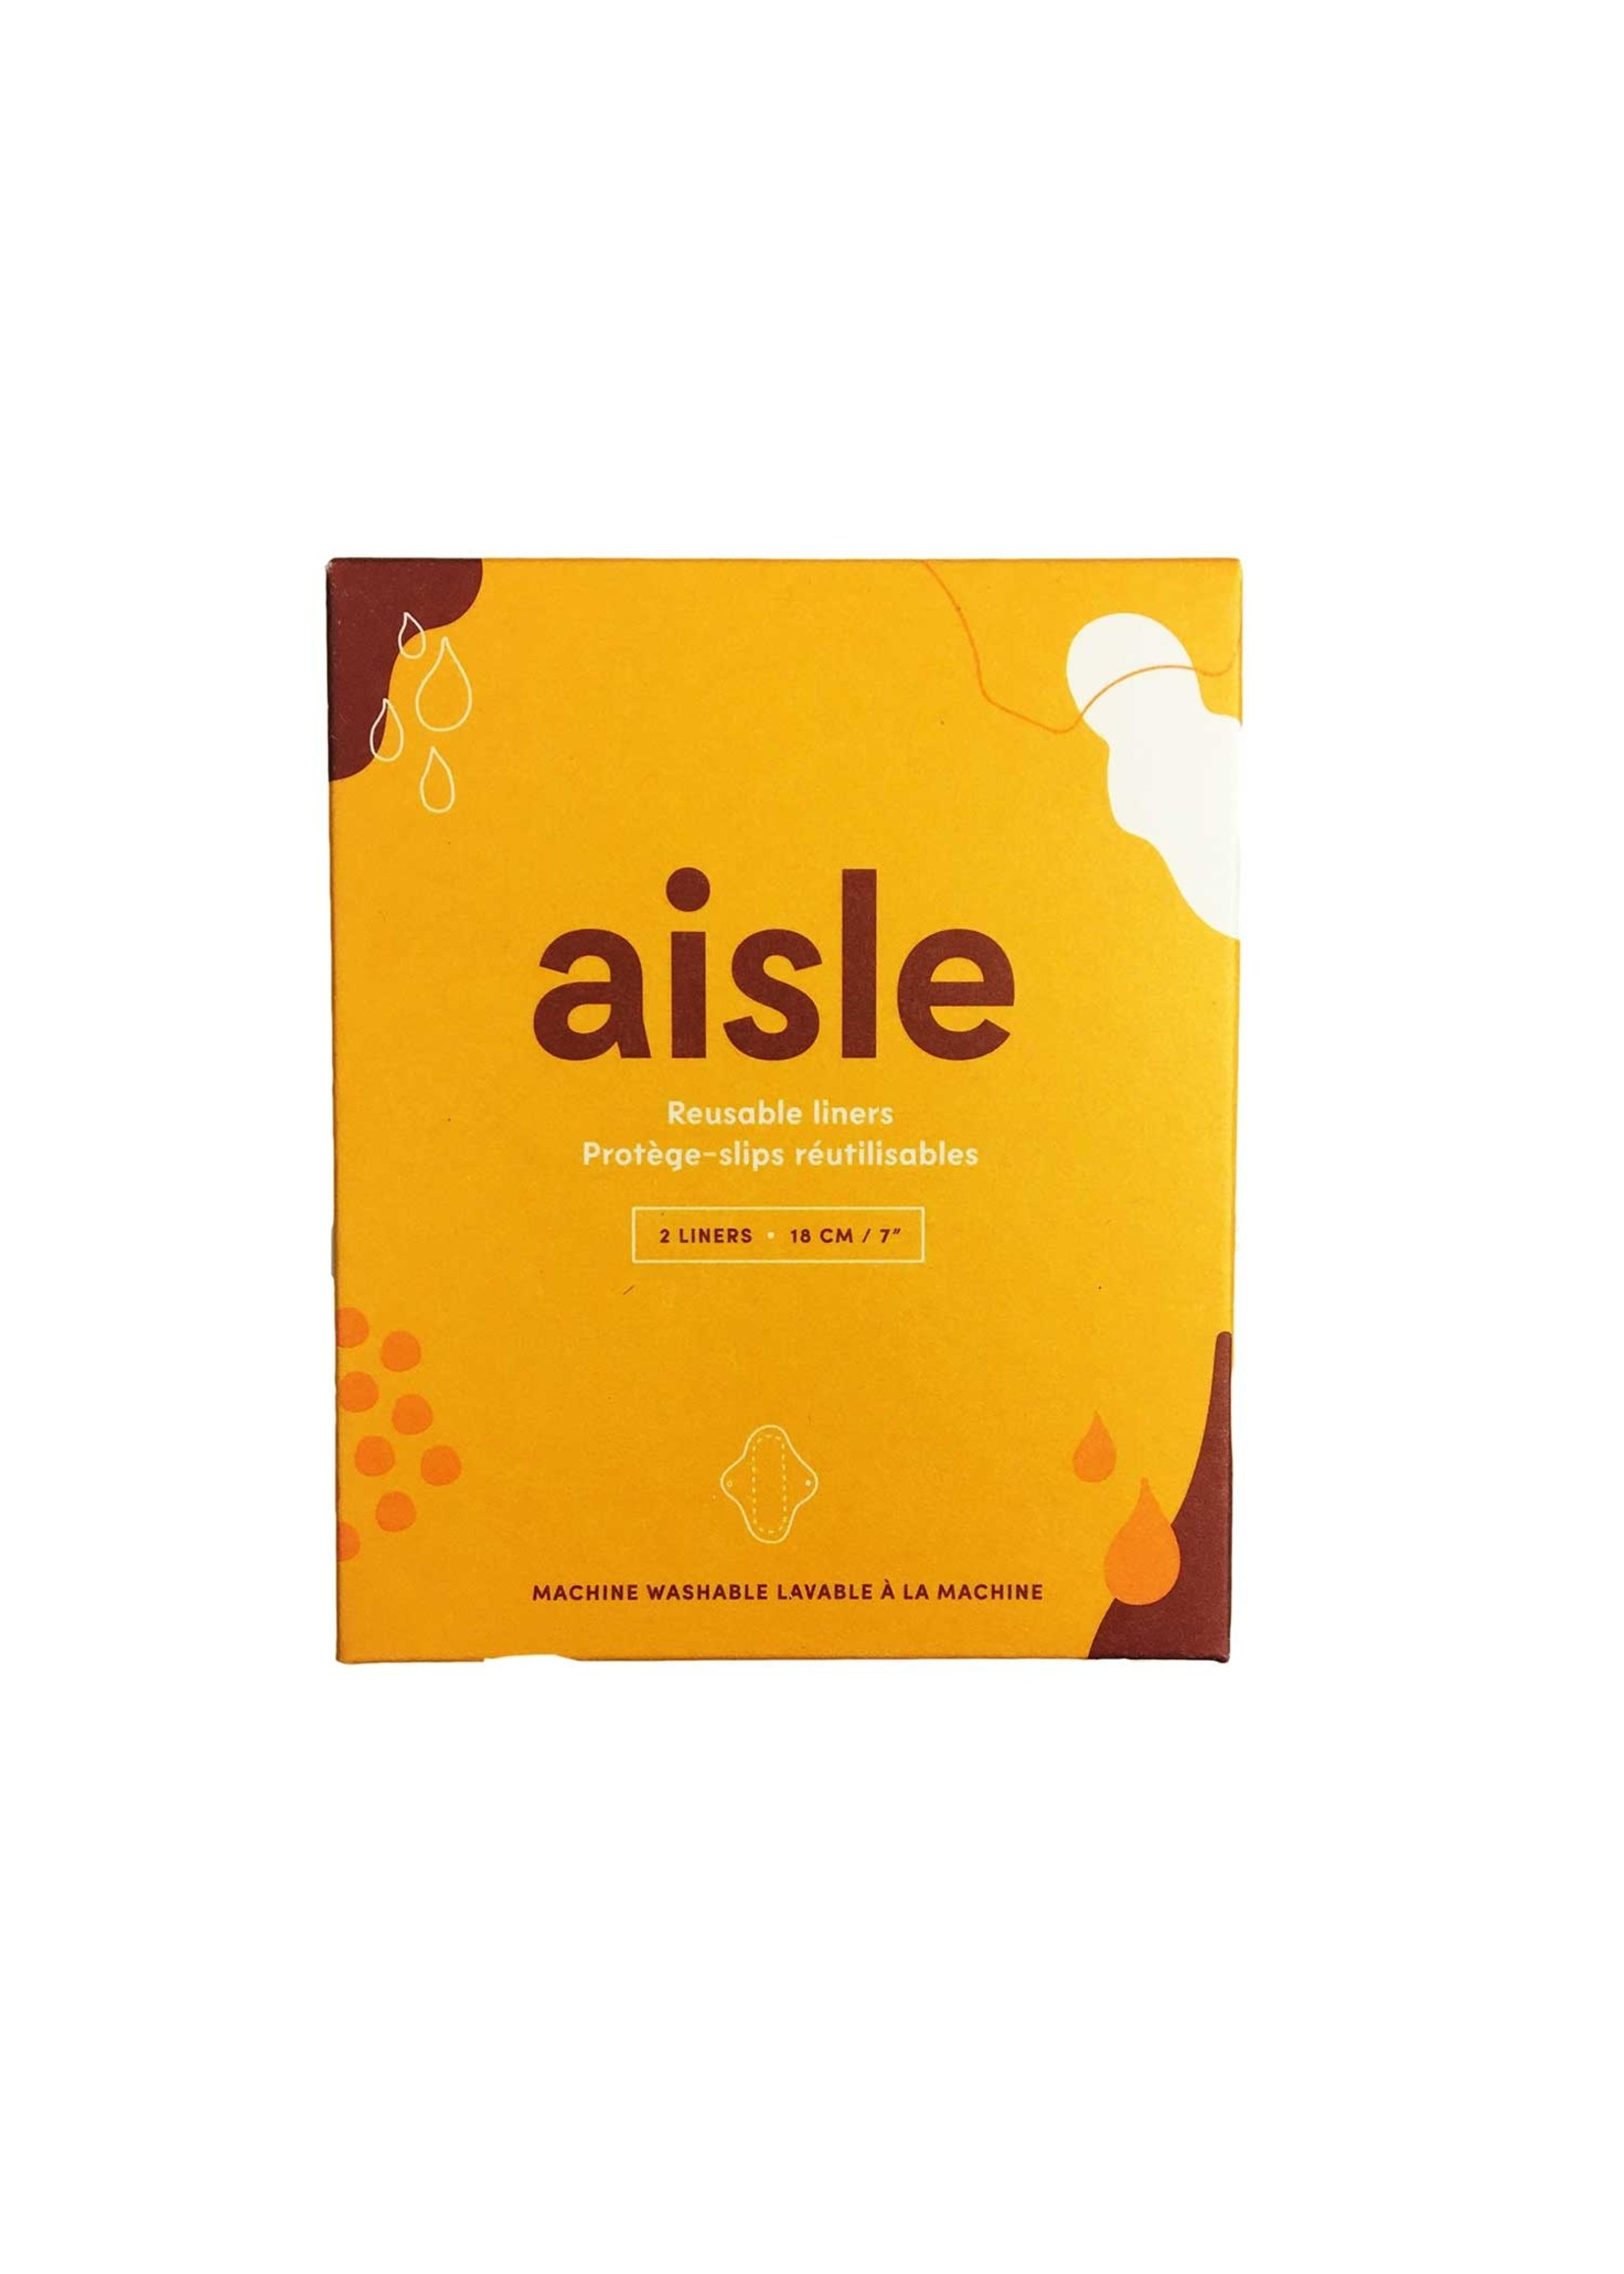 AISLE-REUSABLE LINERS 2 LINERS